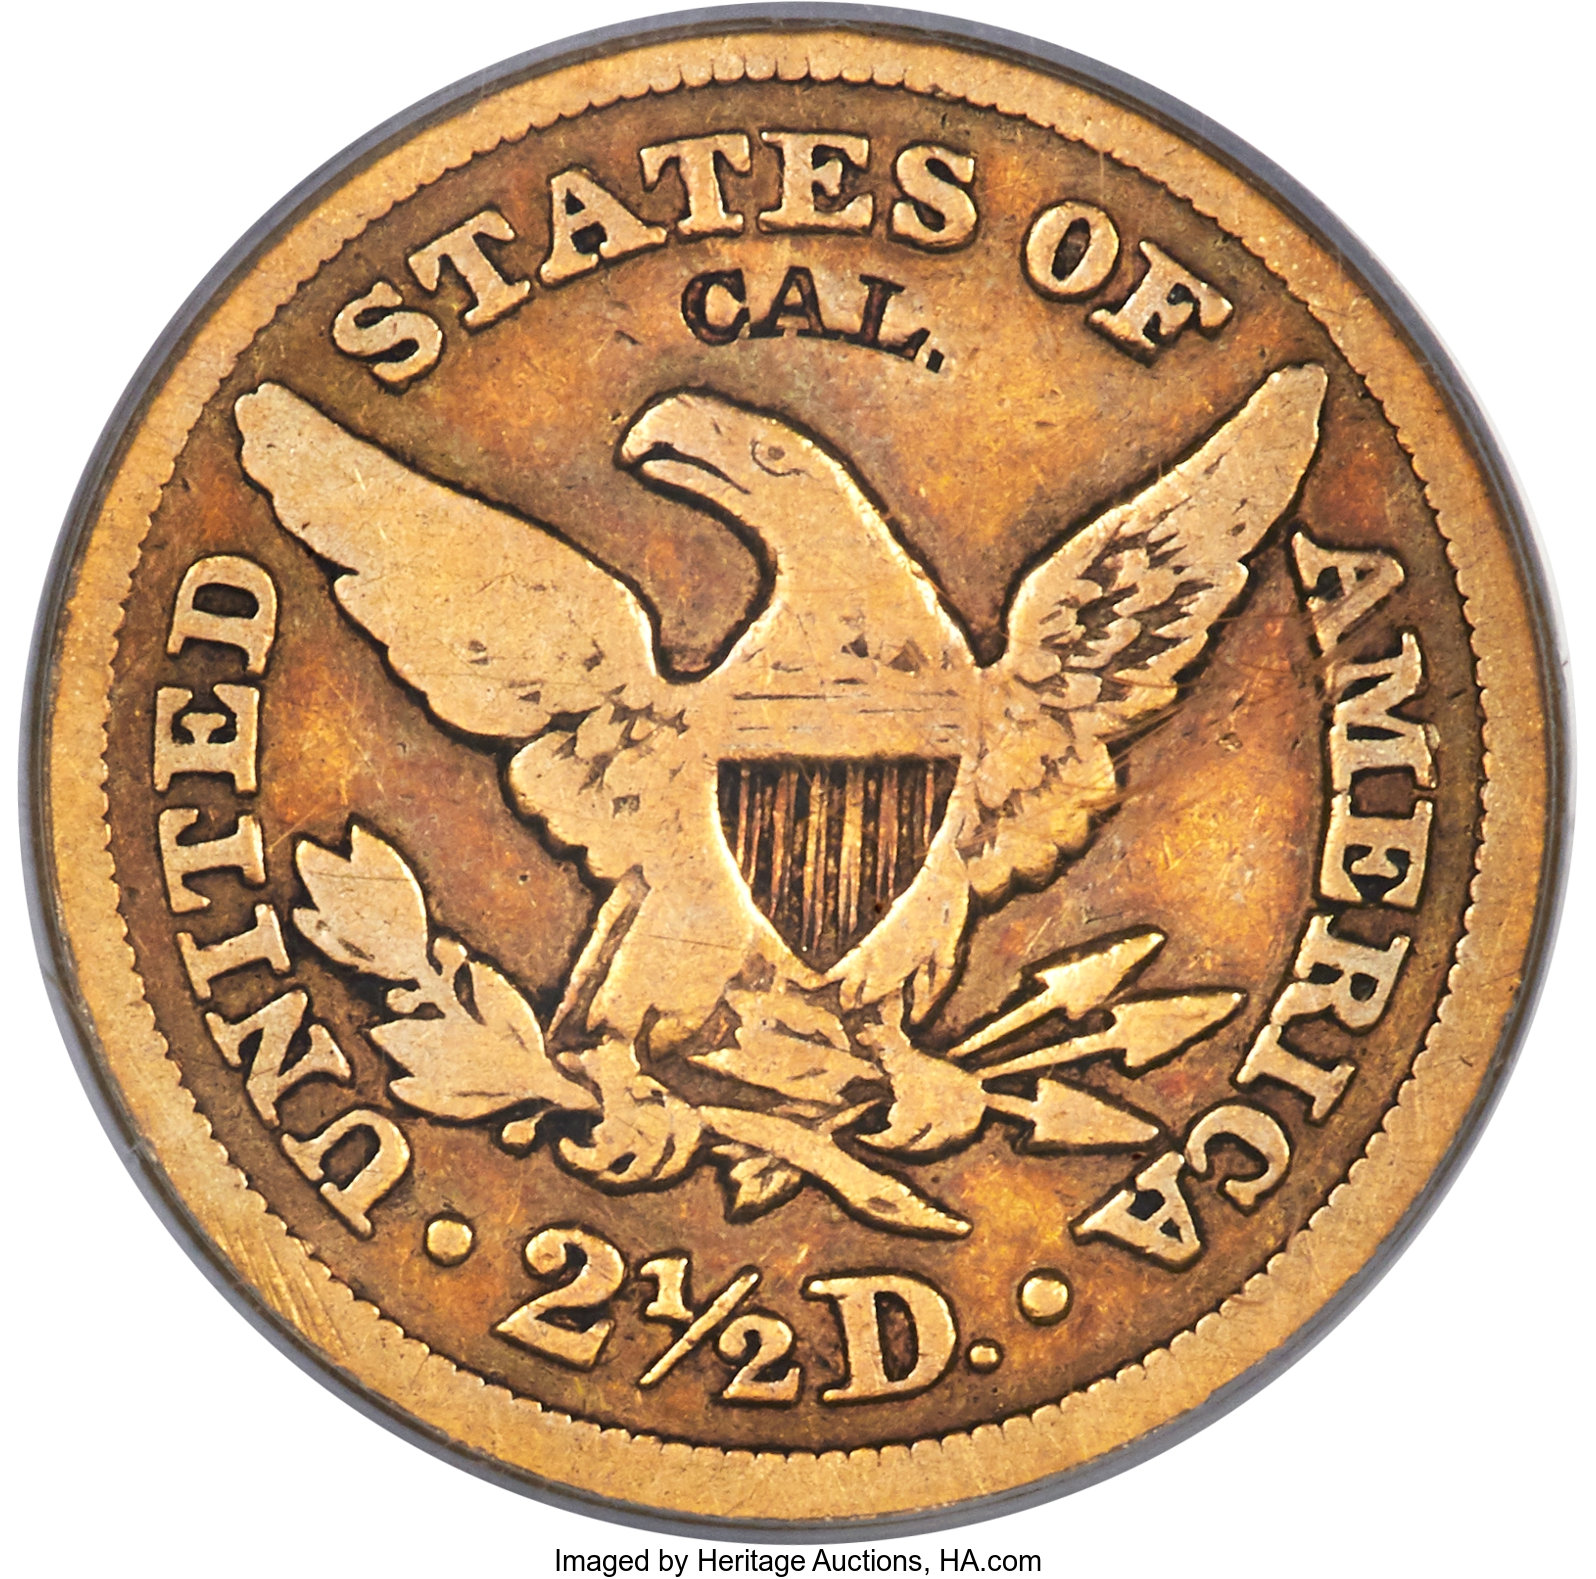 main image for Collector-Friendly Example of America's First Commemorative Coin